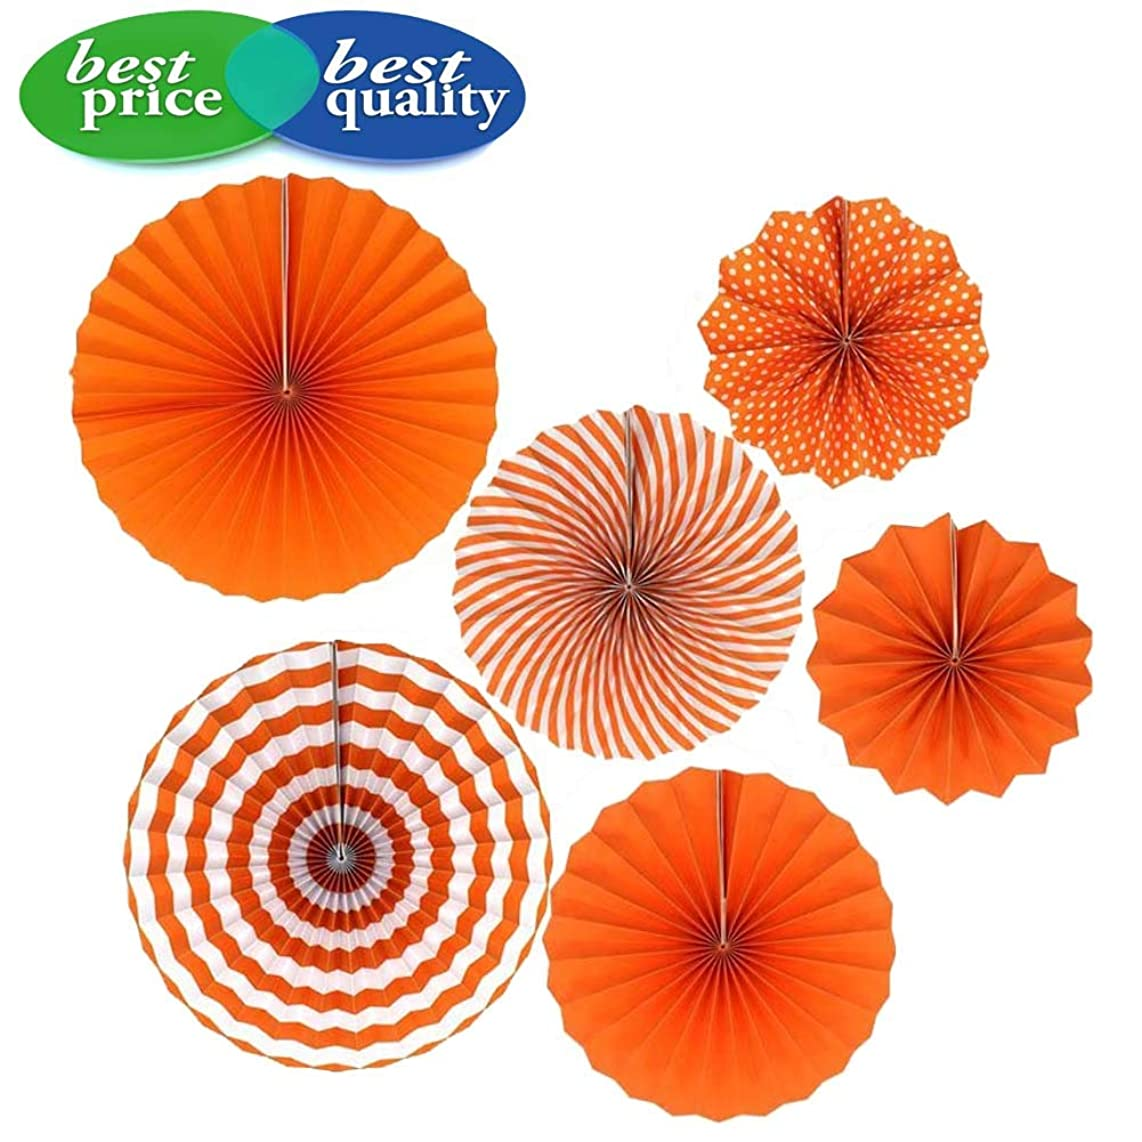 LXS Party Hanging Paper Fans Decoration Set, Round Pattern Paper Garlands Decoration for Wedding Birthday Party Baby Showers Graduation Events Accessories, Set of 6(Orange)